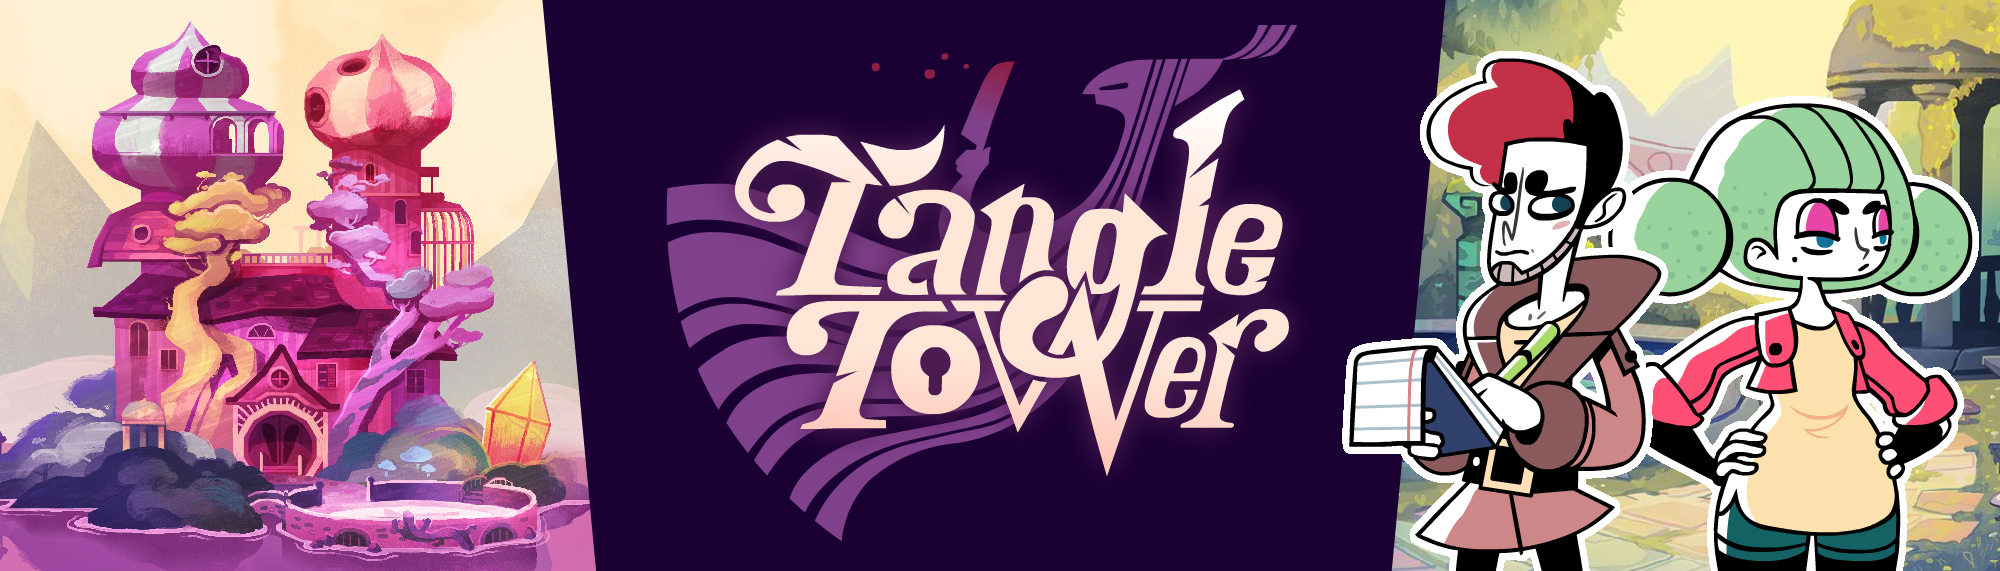 Tangle Tower review: Unraveling the web